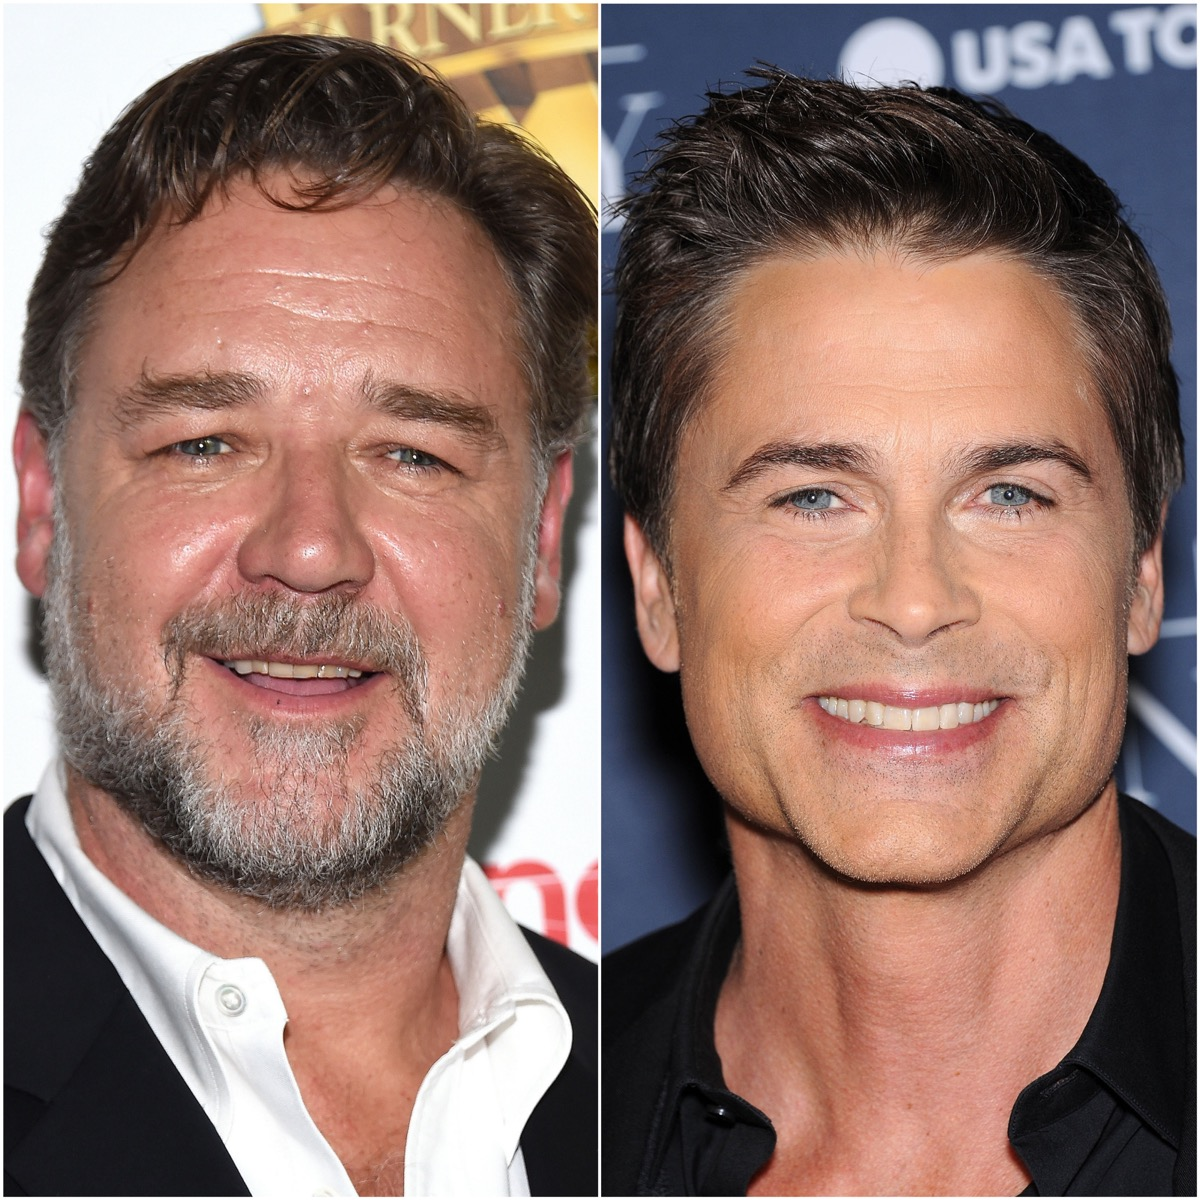 Russell Crowe and Rob Lowe